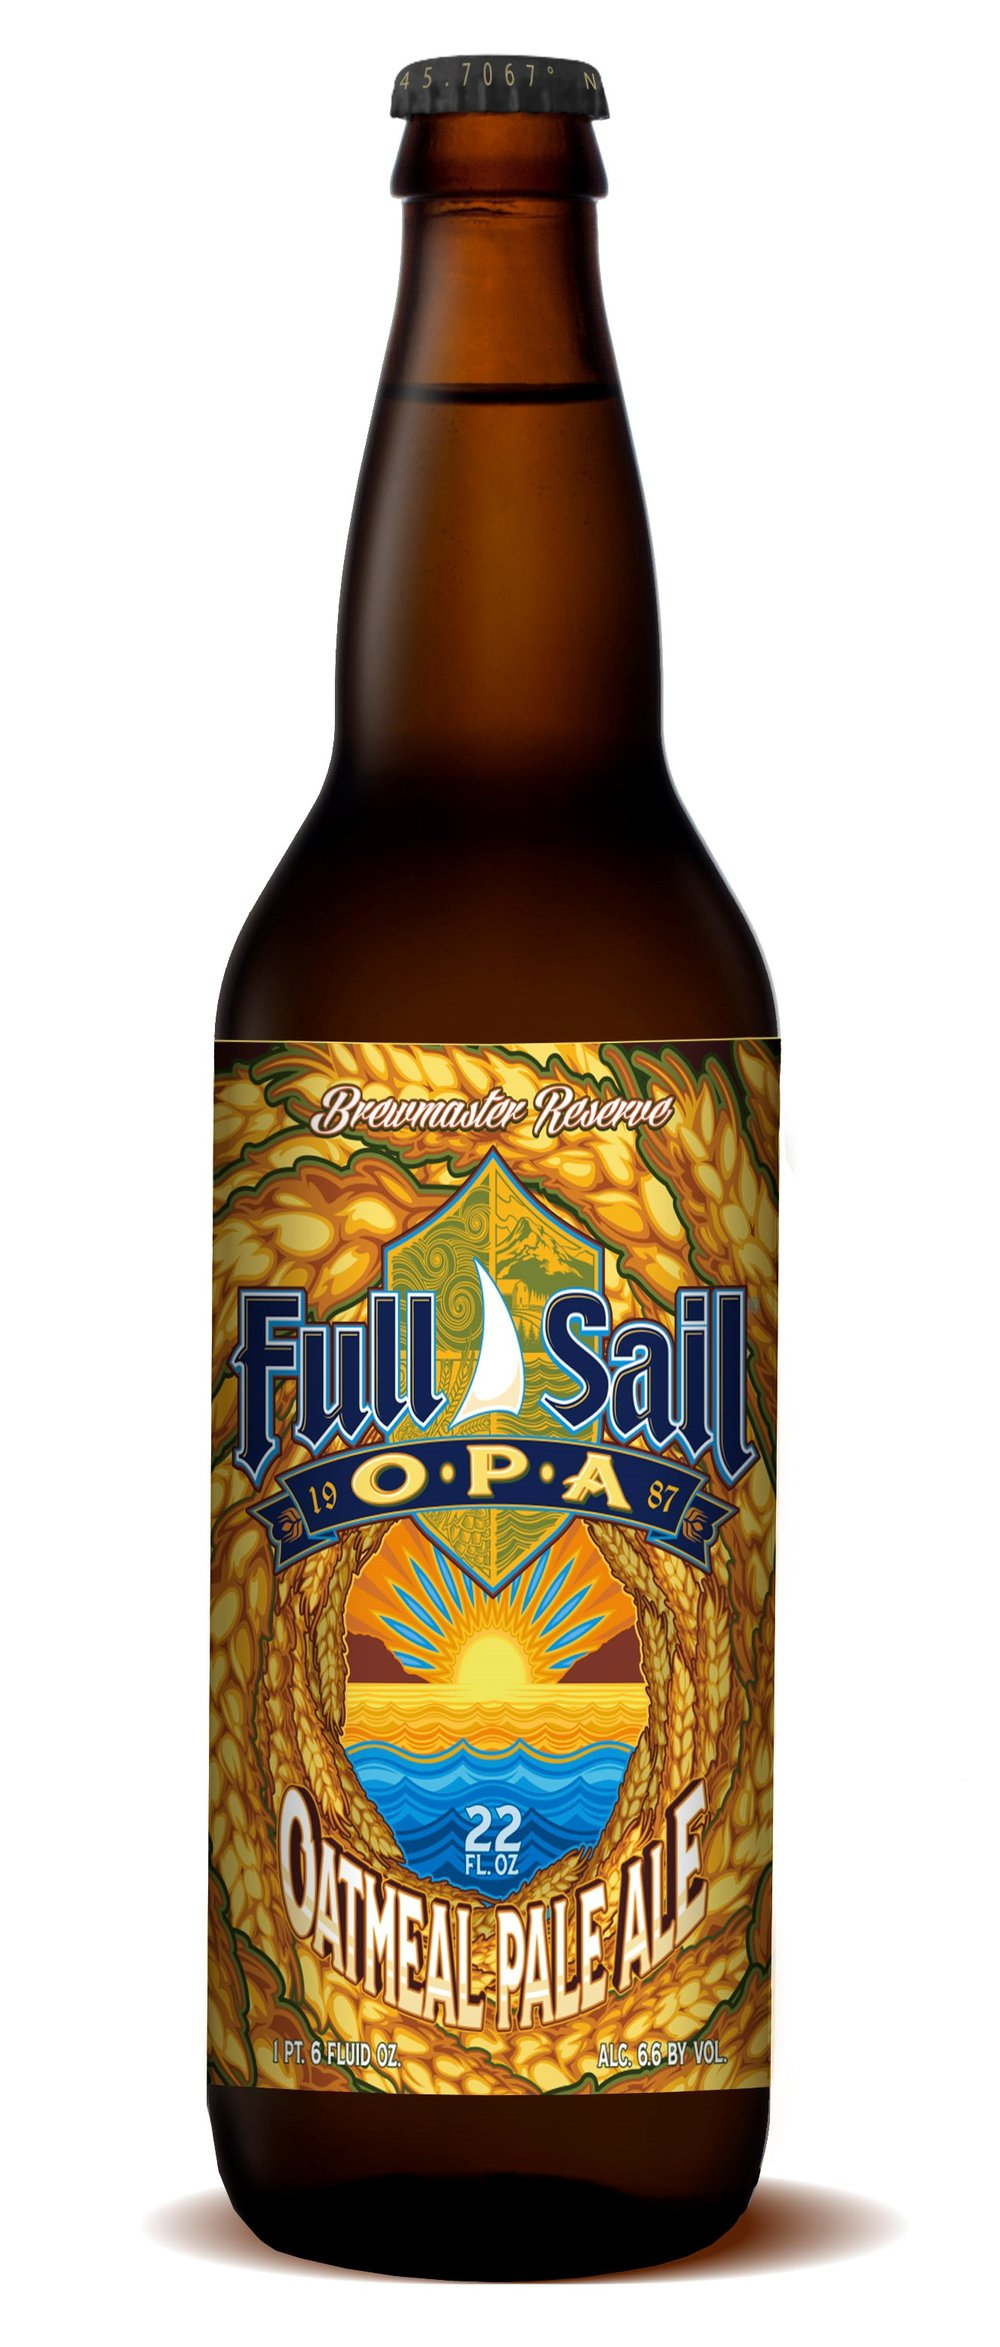 image courtesy Full Sail Brewing Company